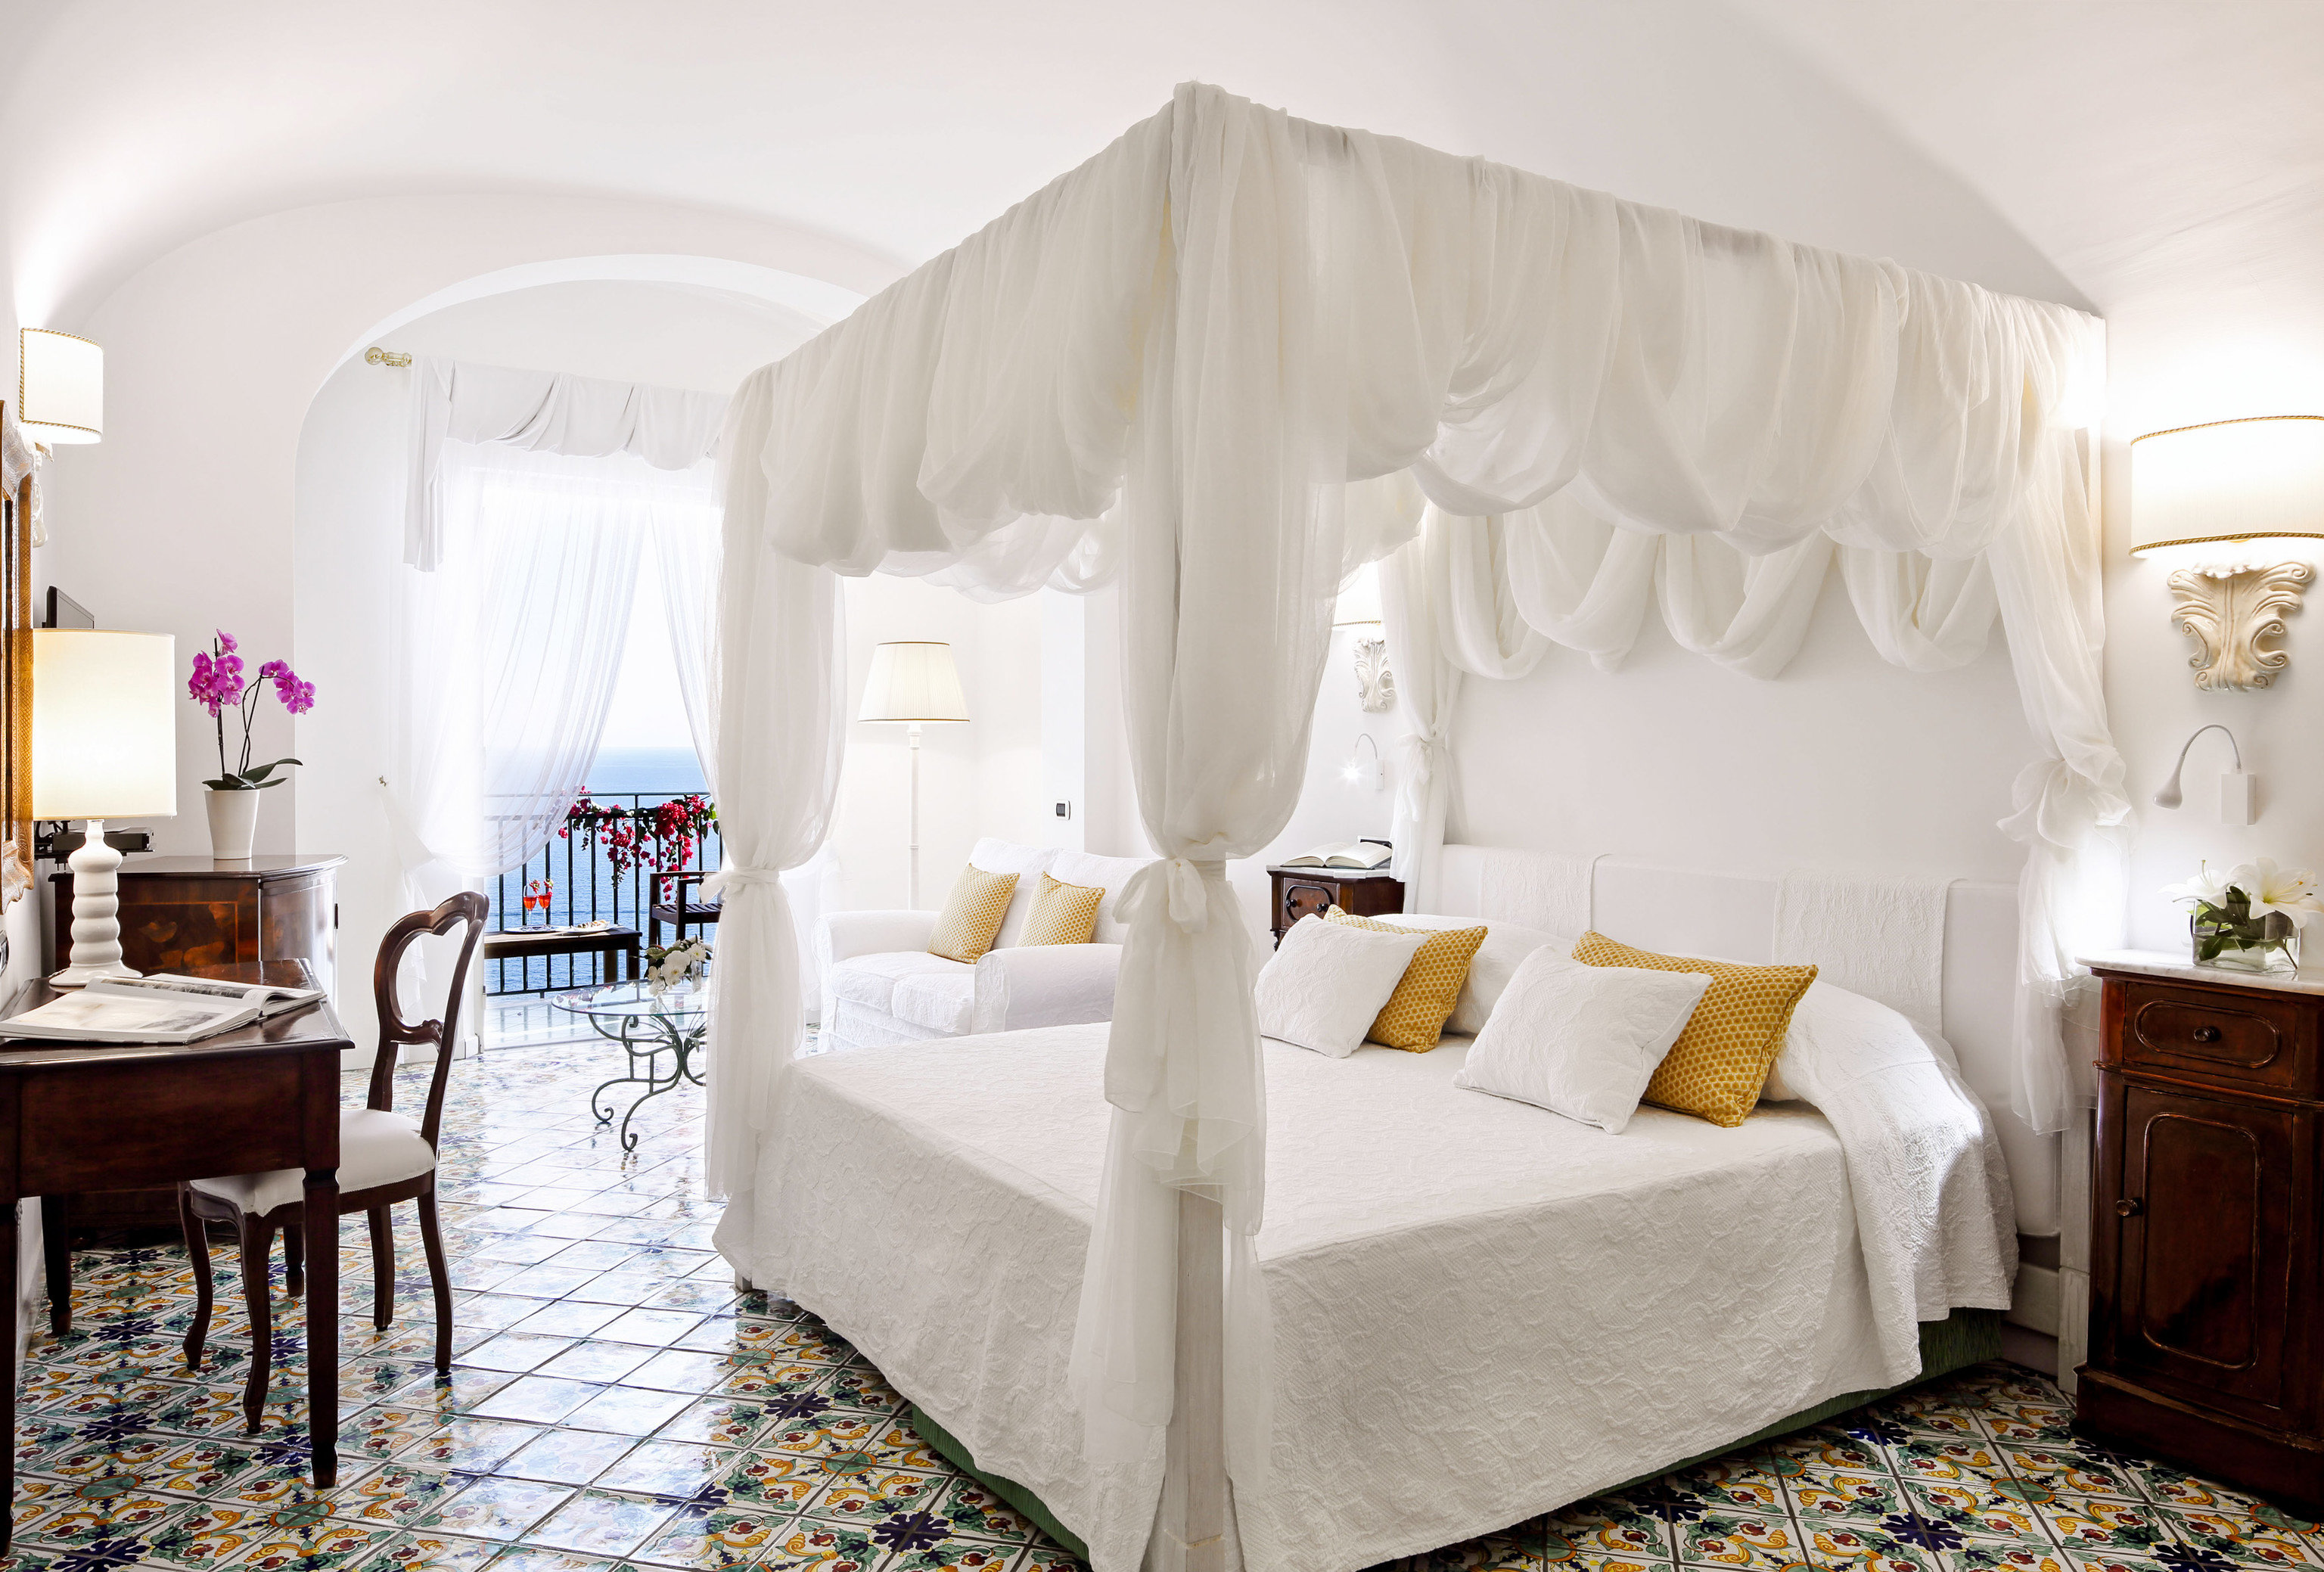 Suite Bedroom bed frame home window treatment curtain bedding living room interior designer mattress four poster